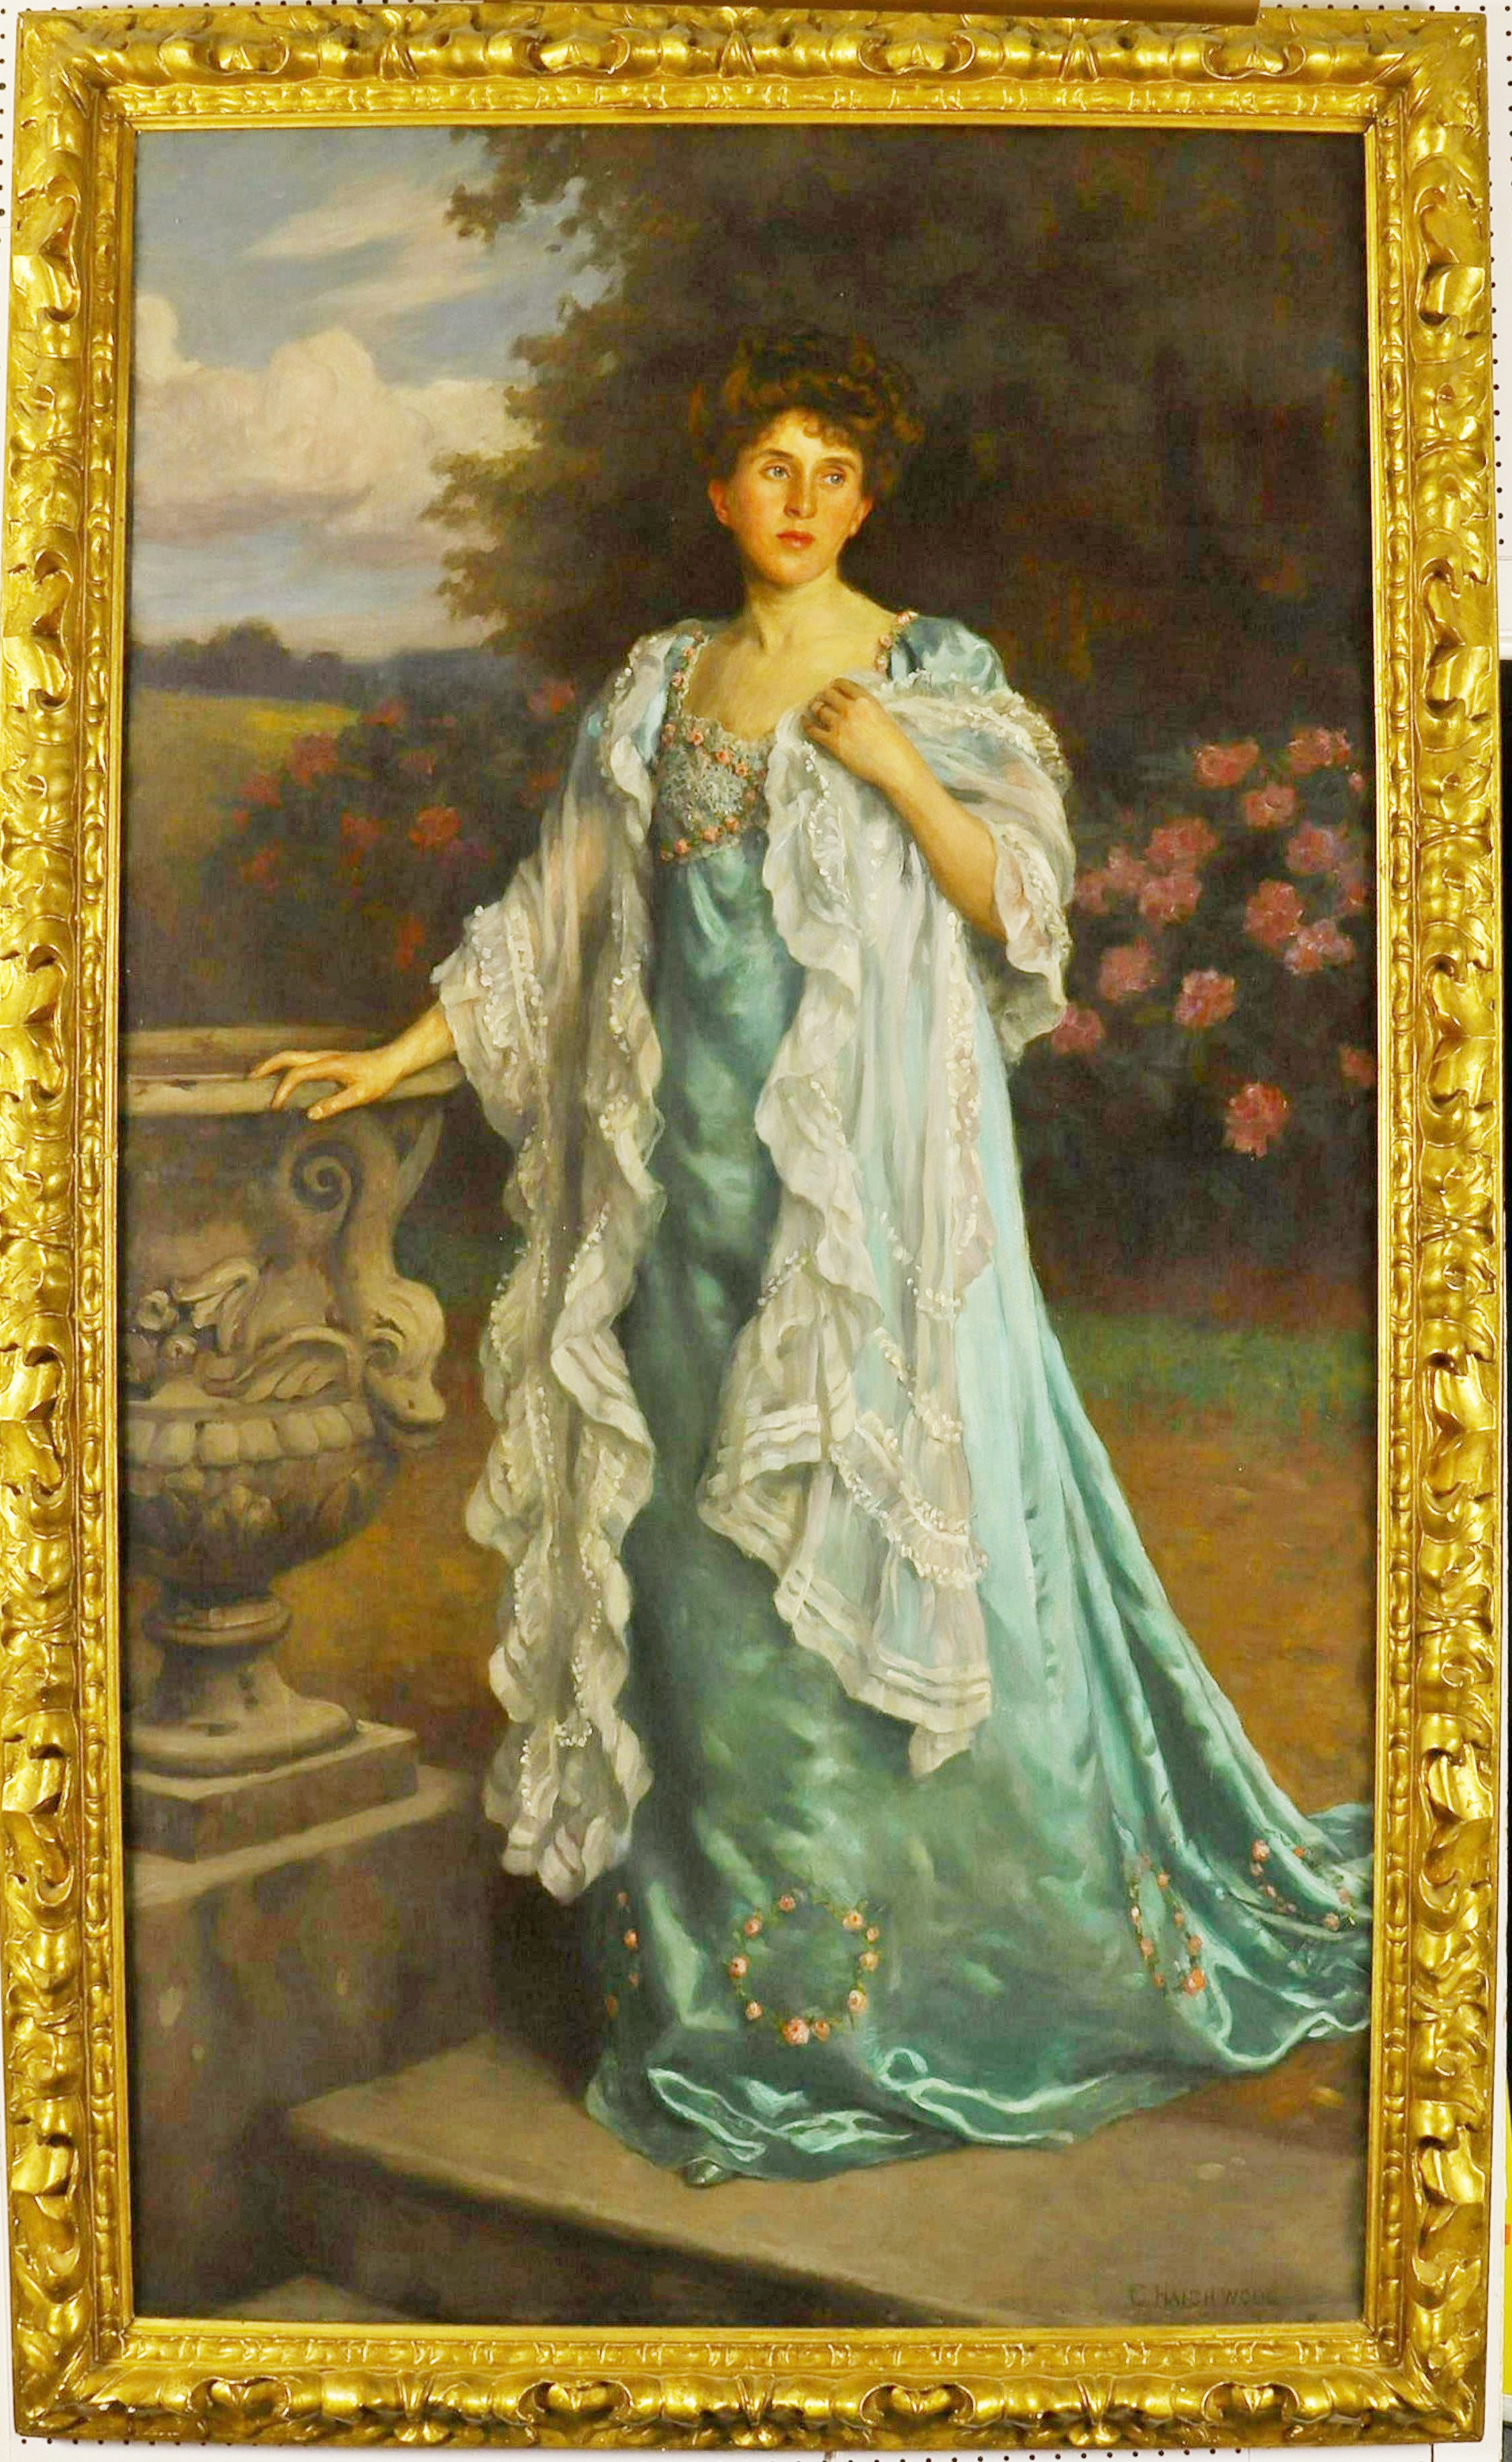 Charles Haigh-Wood, Portrait Of A Lady, Oil On Canvas. Sold For 7,150